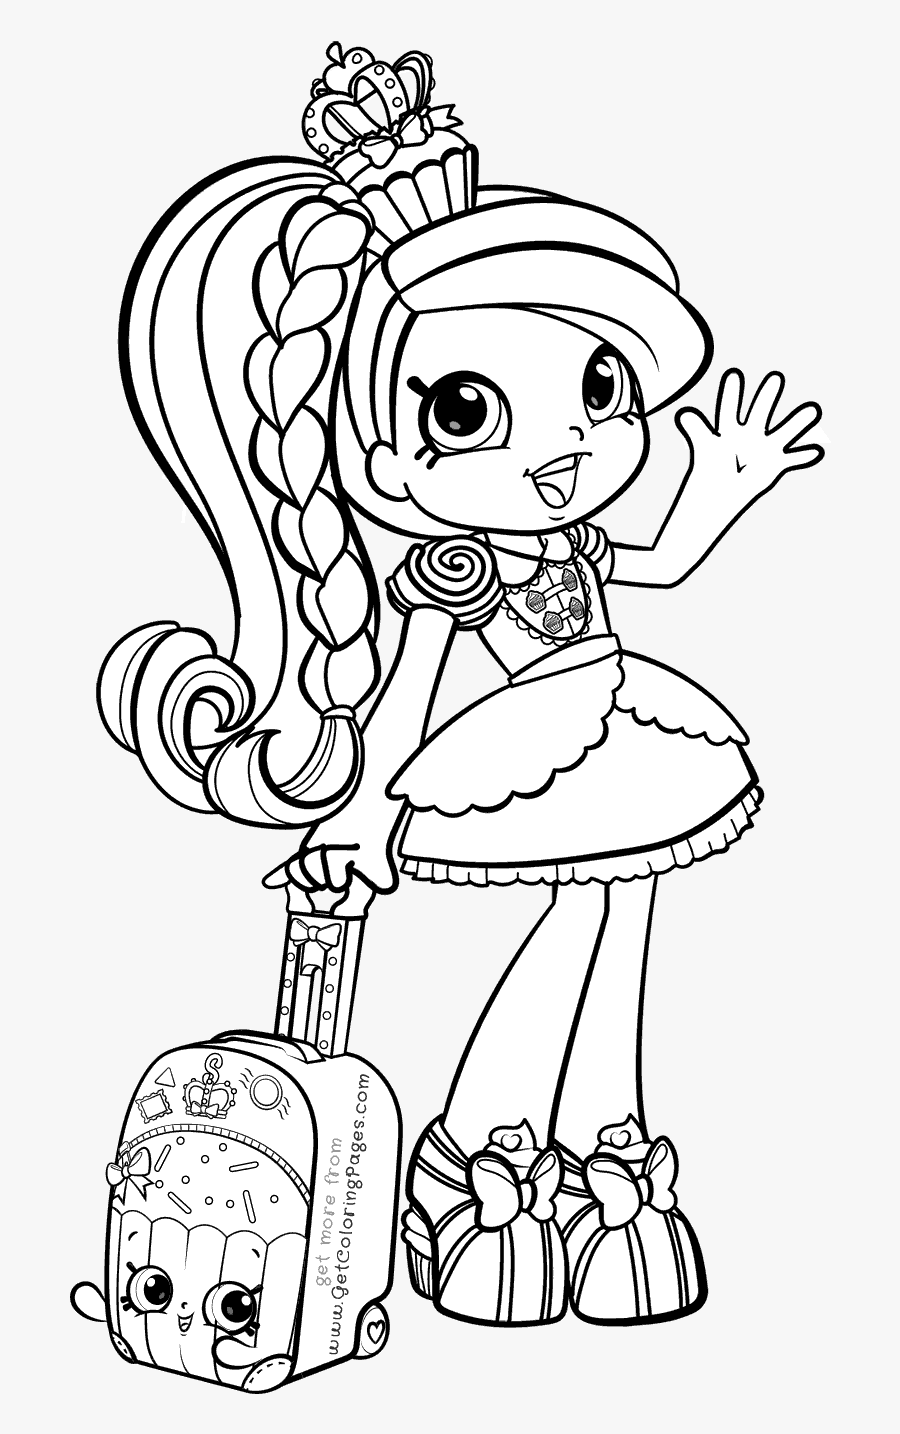 Special Cartoon People Coloring Pages Pin By Hatice - Boy Black ... | 1434x900